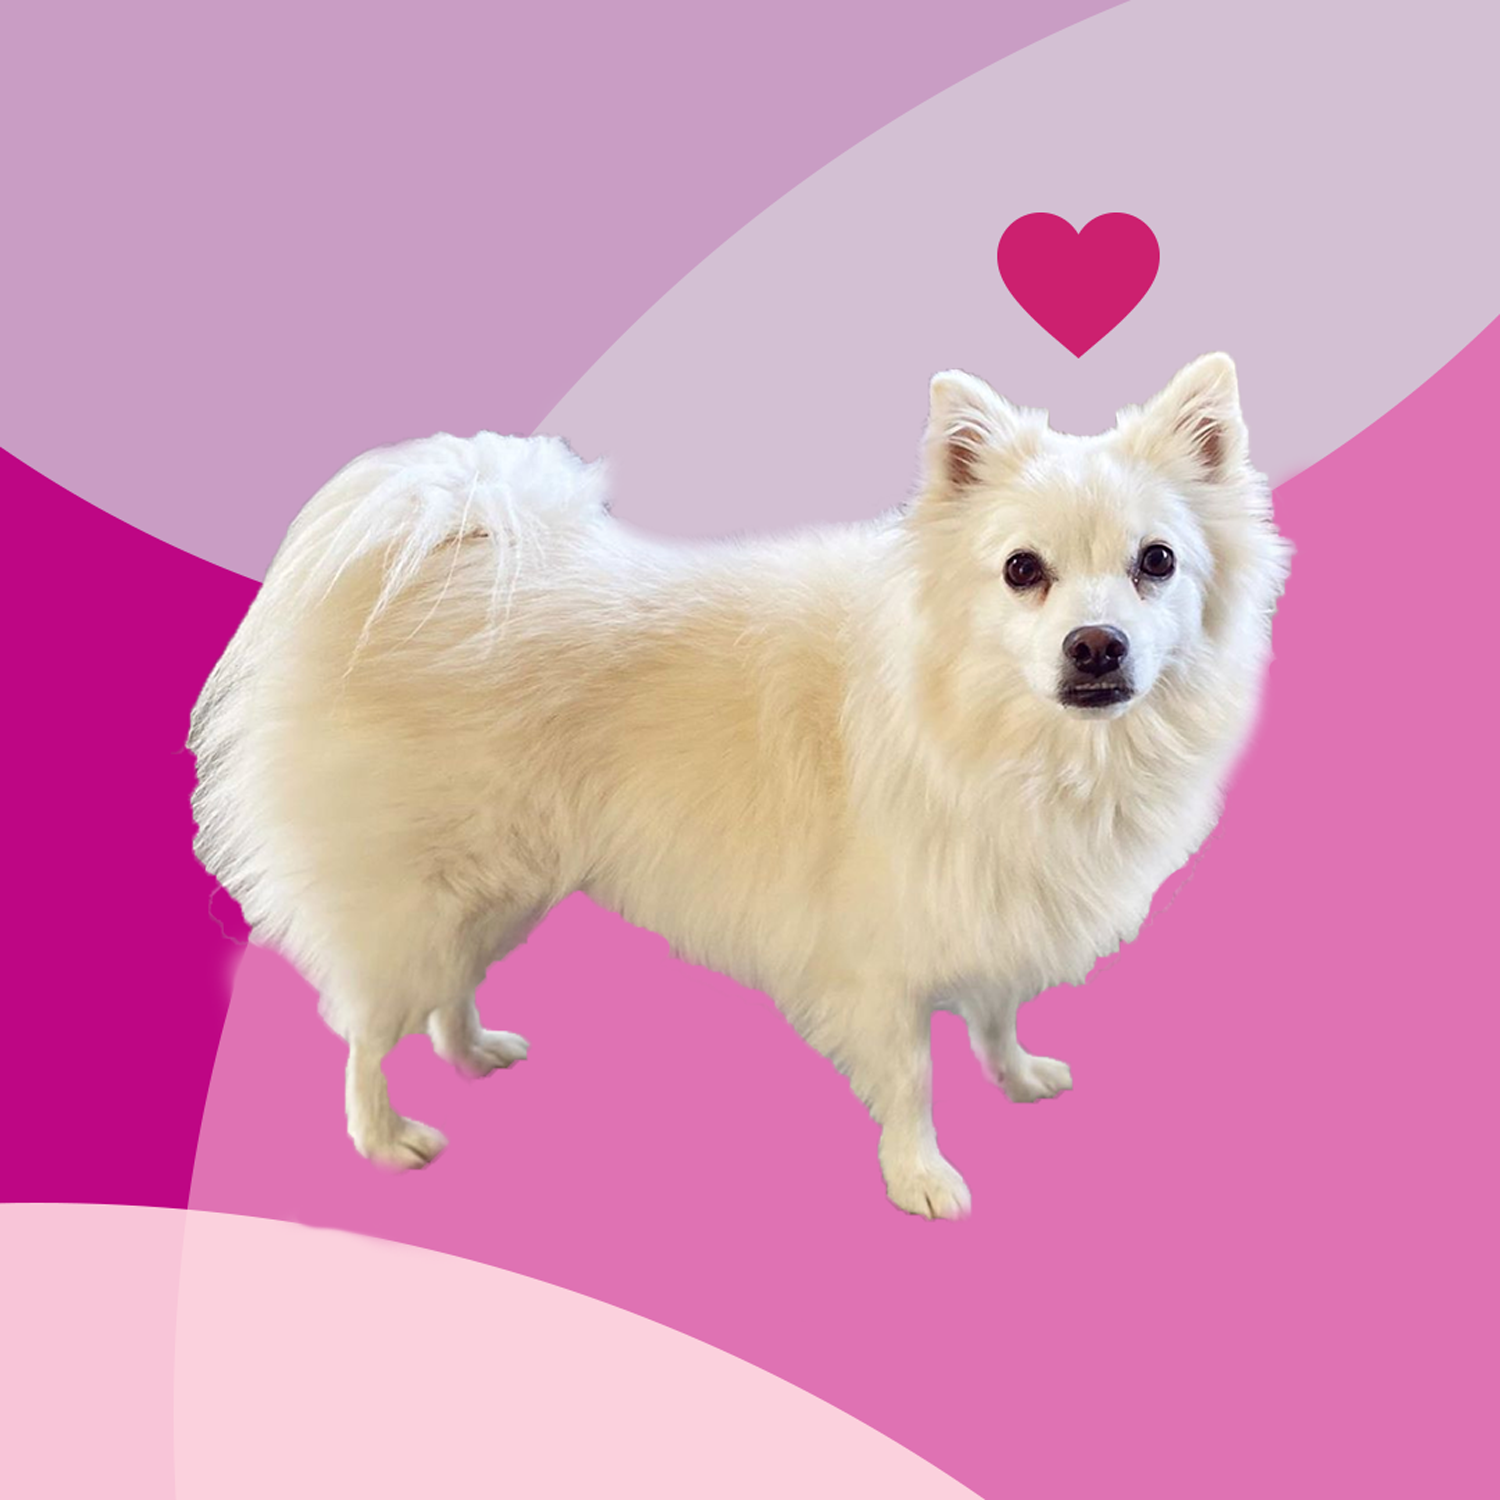 7 Subtle Ways Your Dog Could Be Saying 'I Love You,' According to a Vet